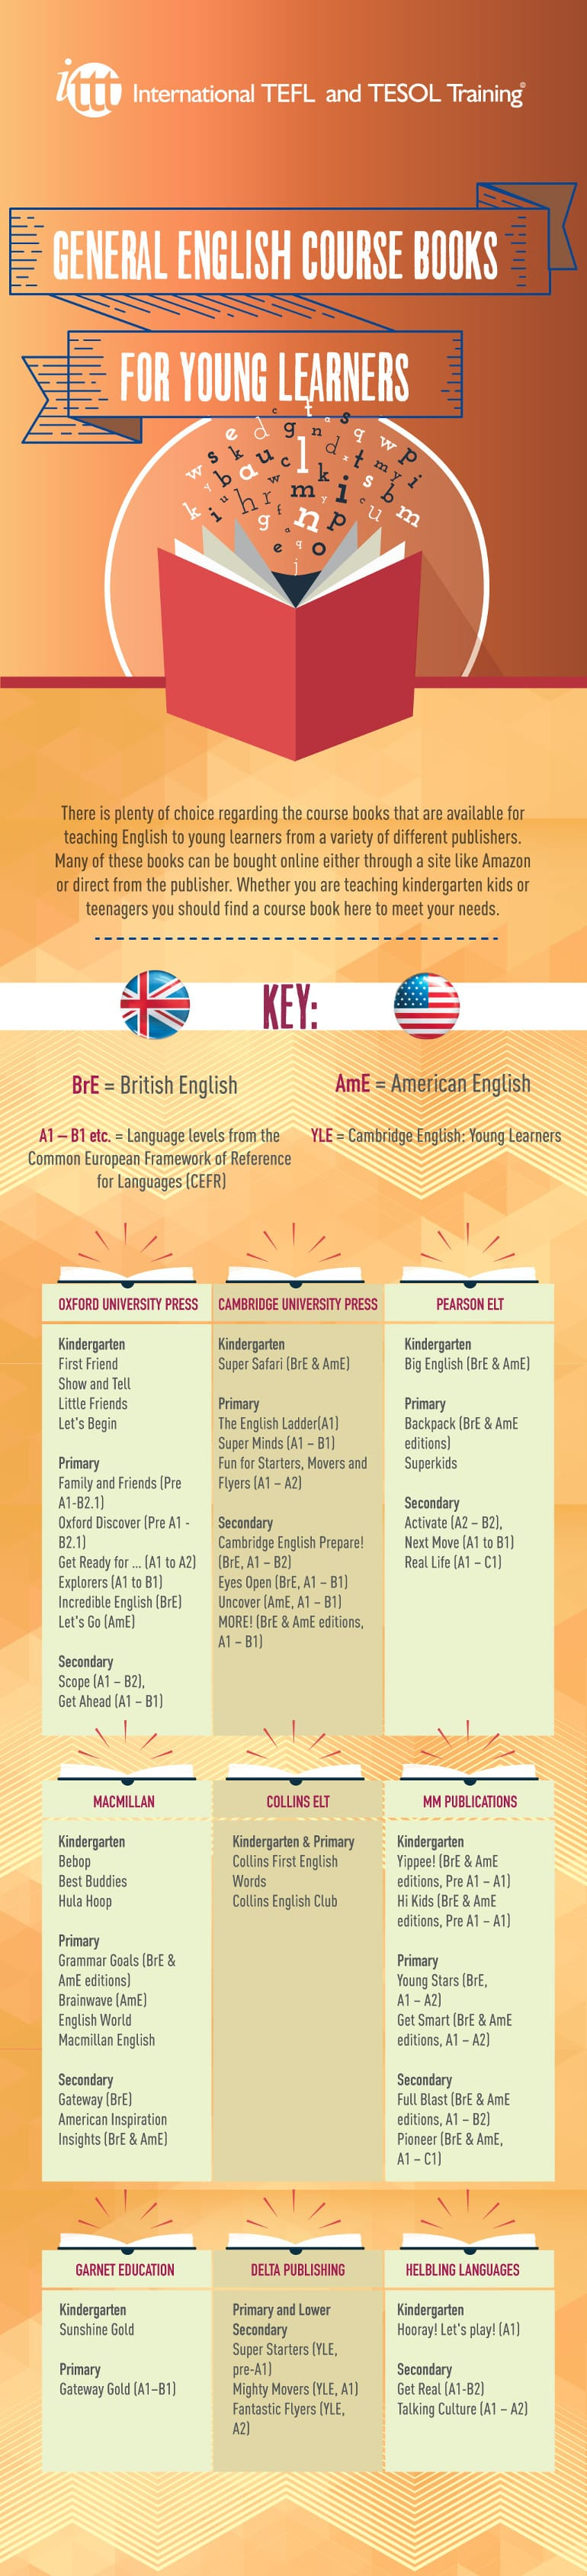 General English Course Books for Young Learners